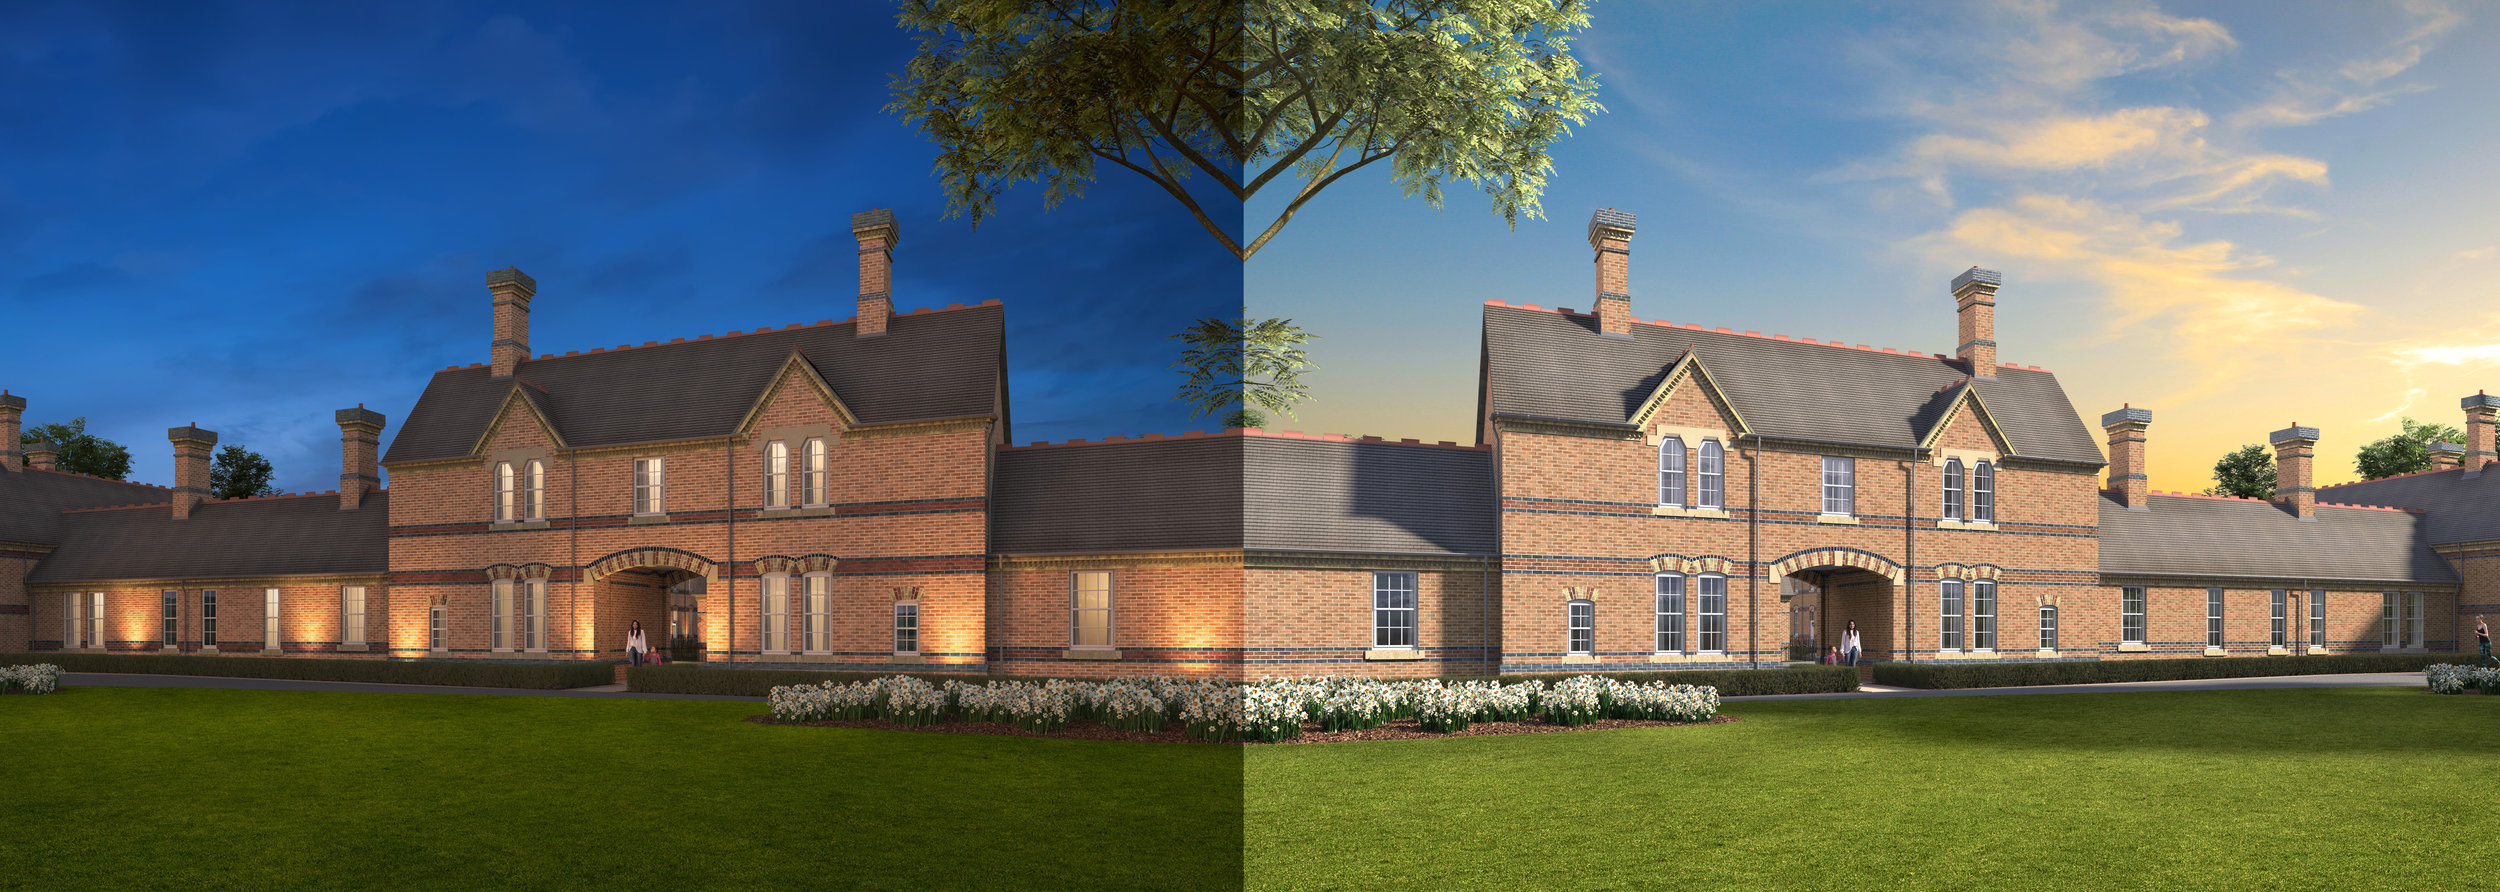 Evening and Daytime Architectural Visualisation.jpg